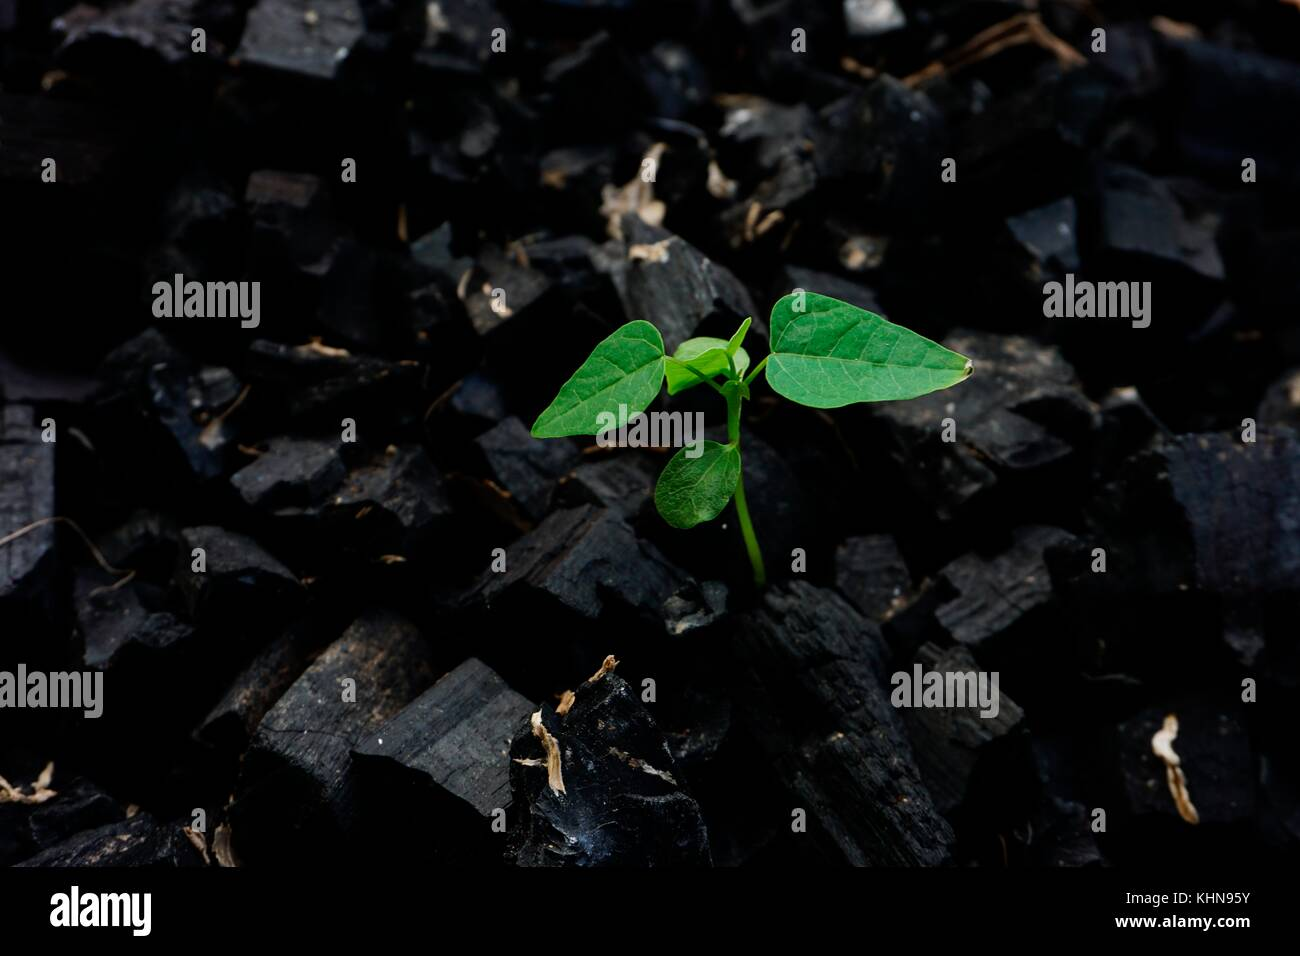 a plant : survival to life - Stock Image